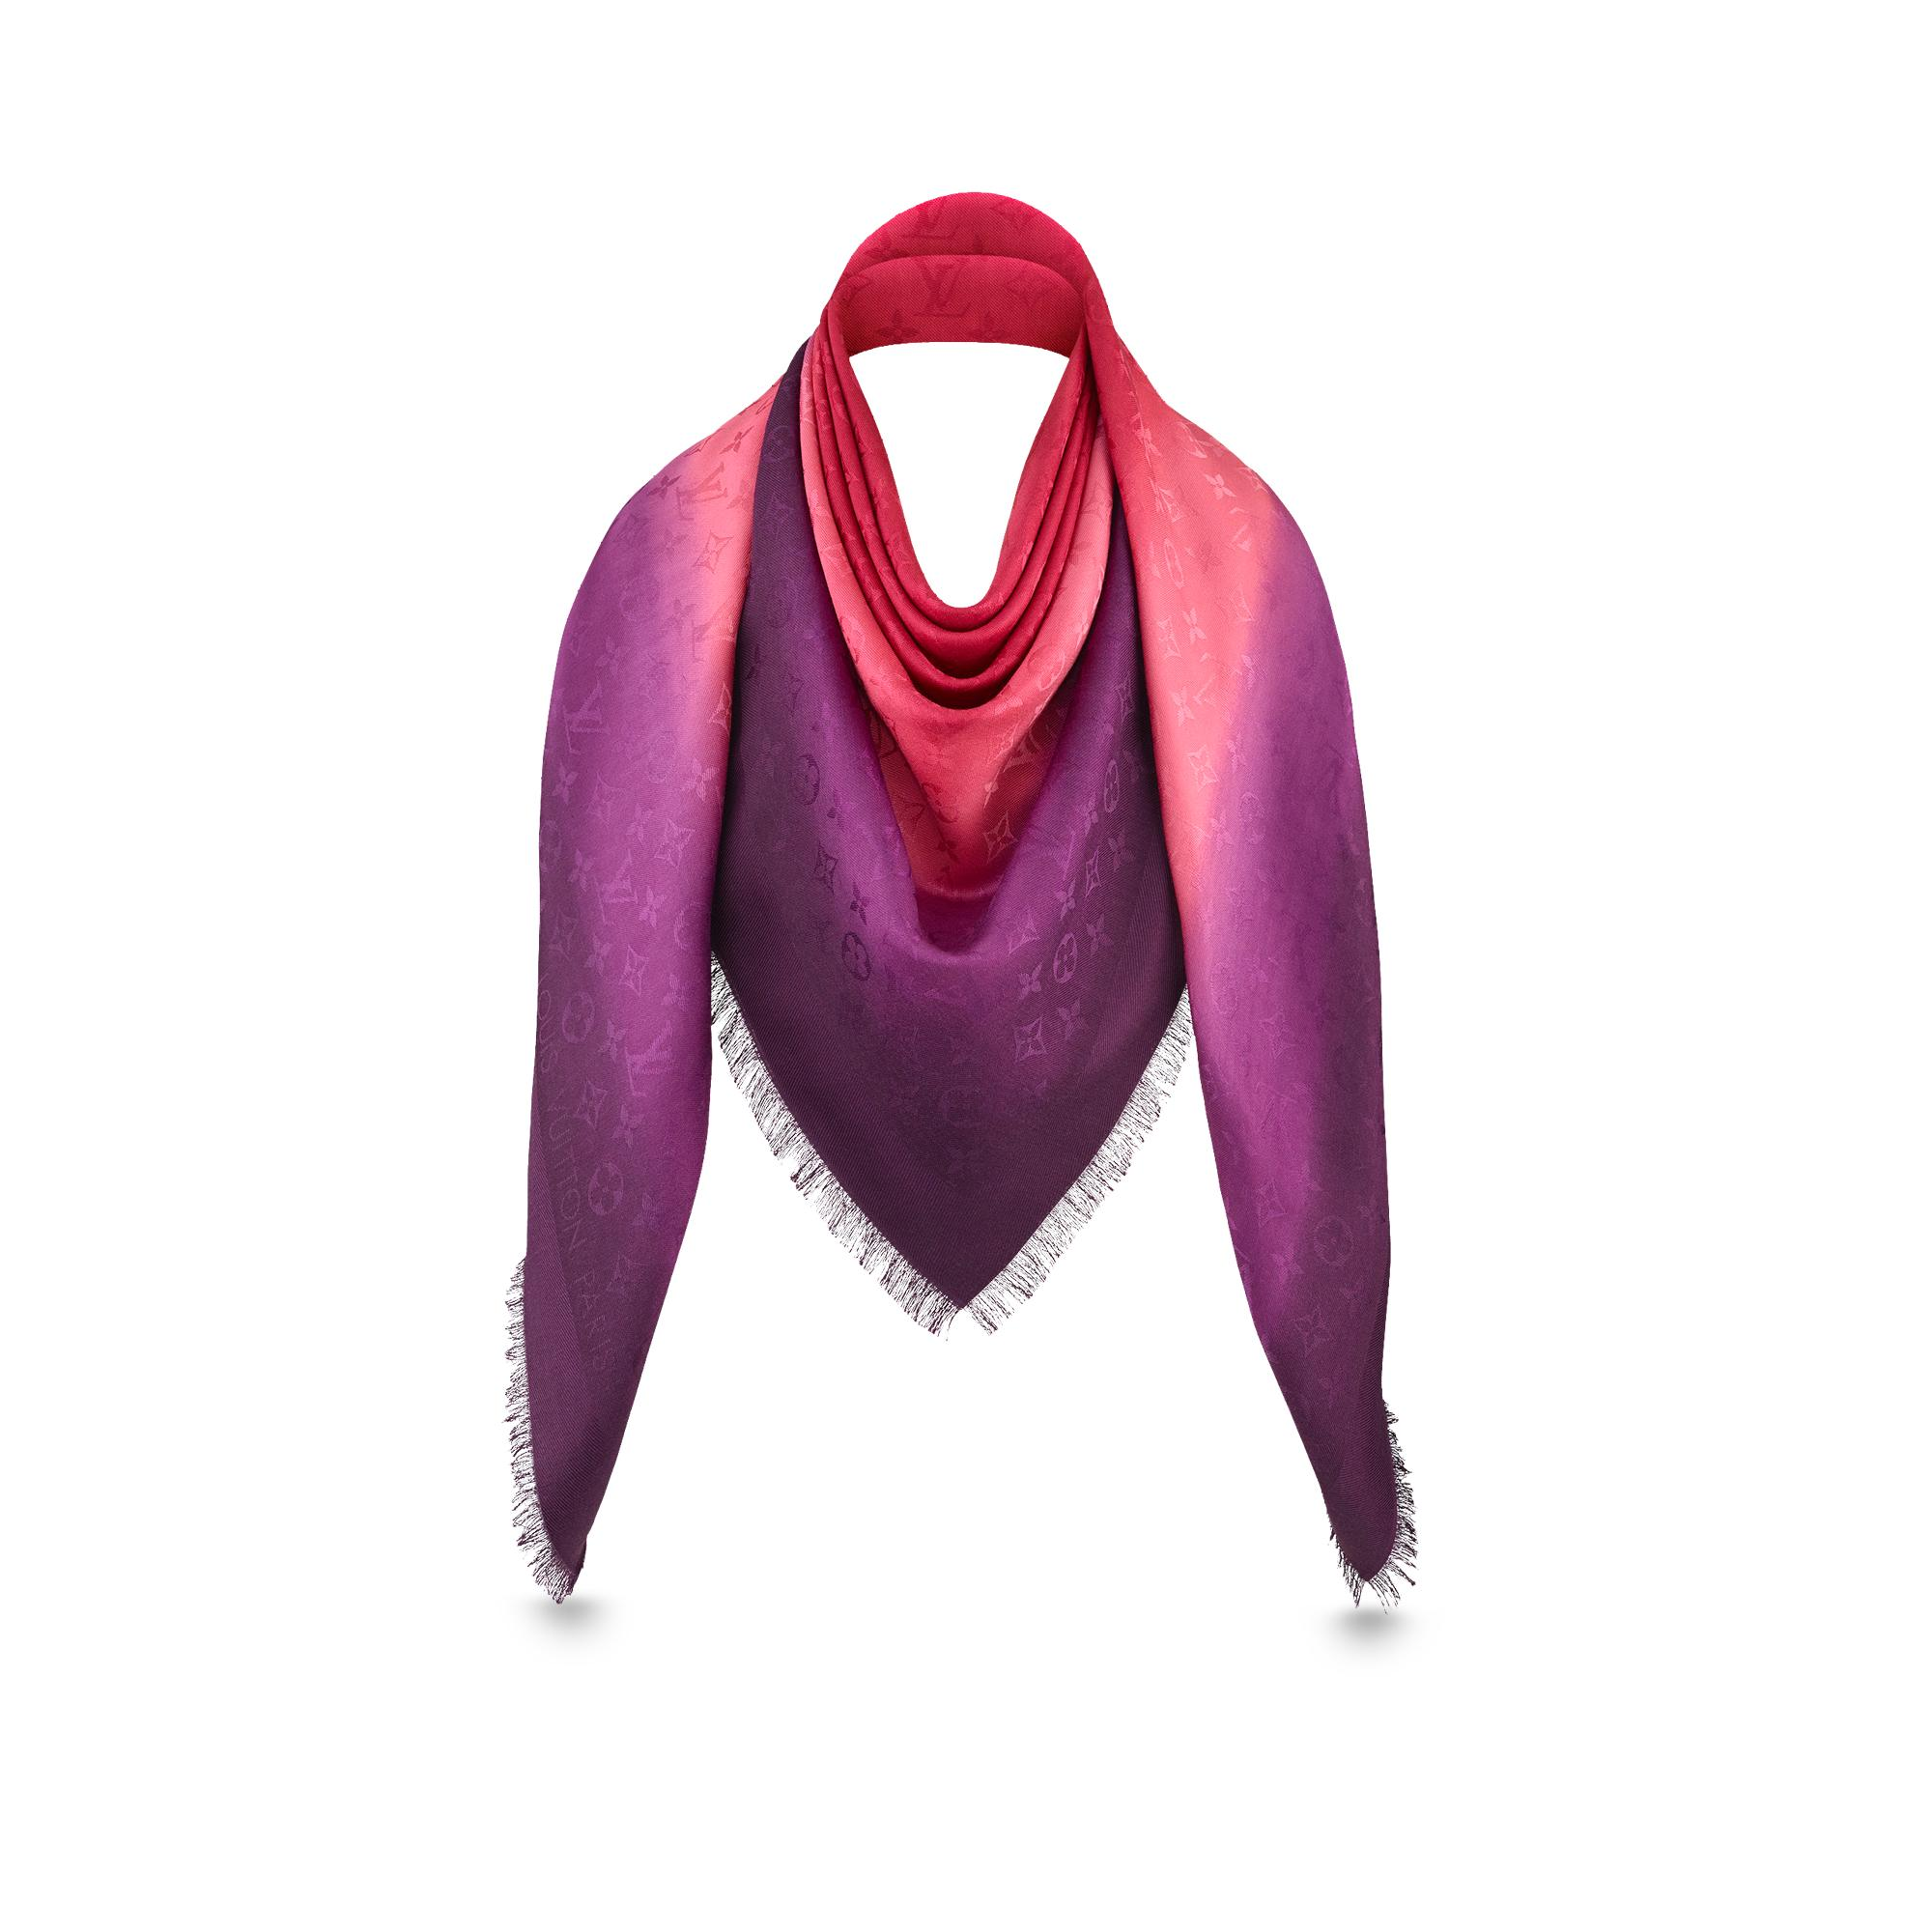 Blurrygram Monogram Shawl Accessories LOUIS VUITTON